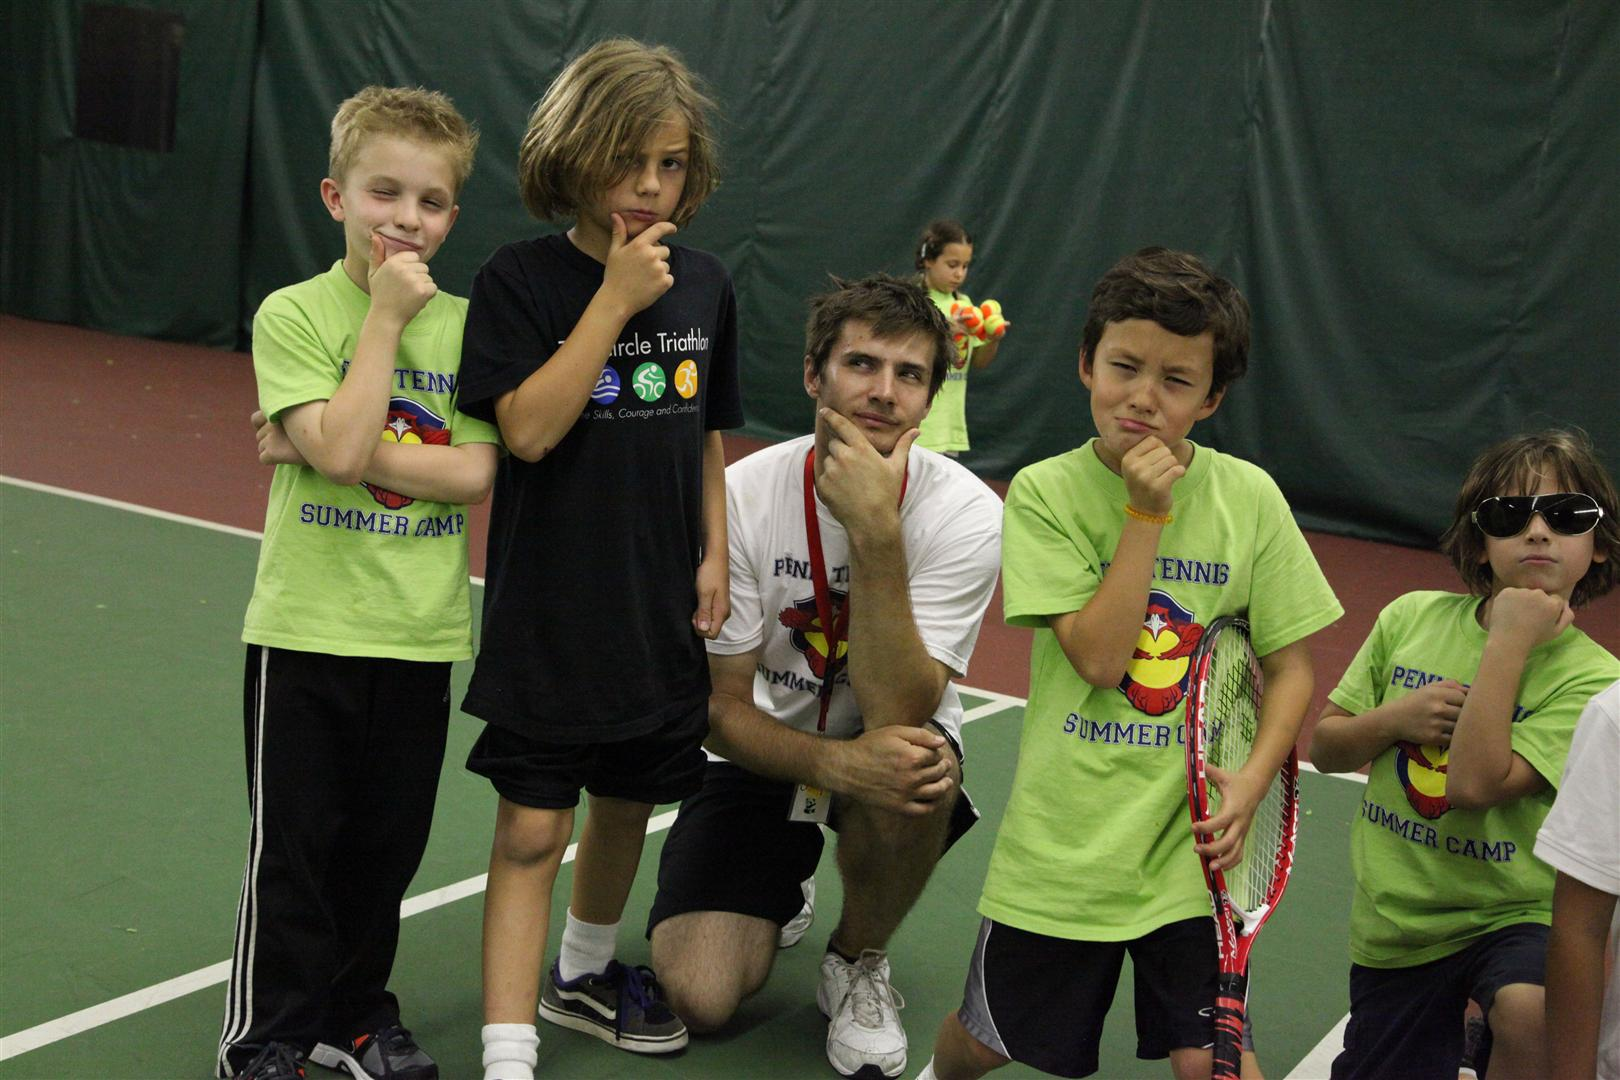 Penn Tennis Summer Camp - Pee Wee